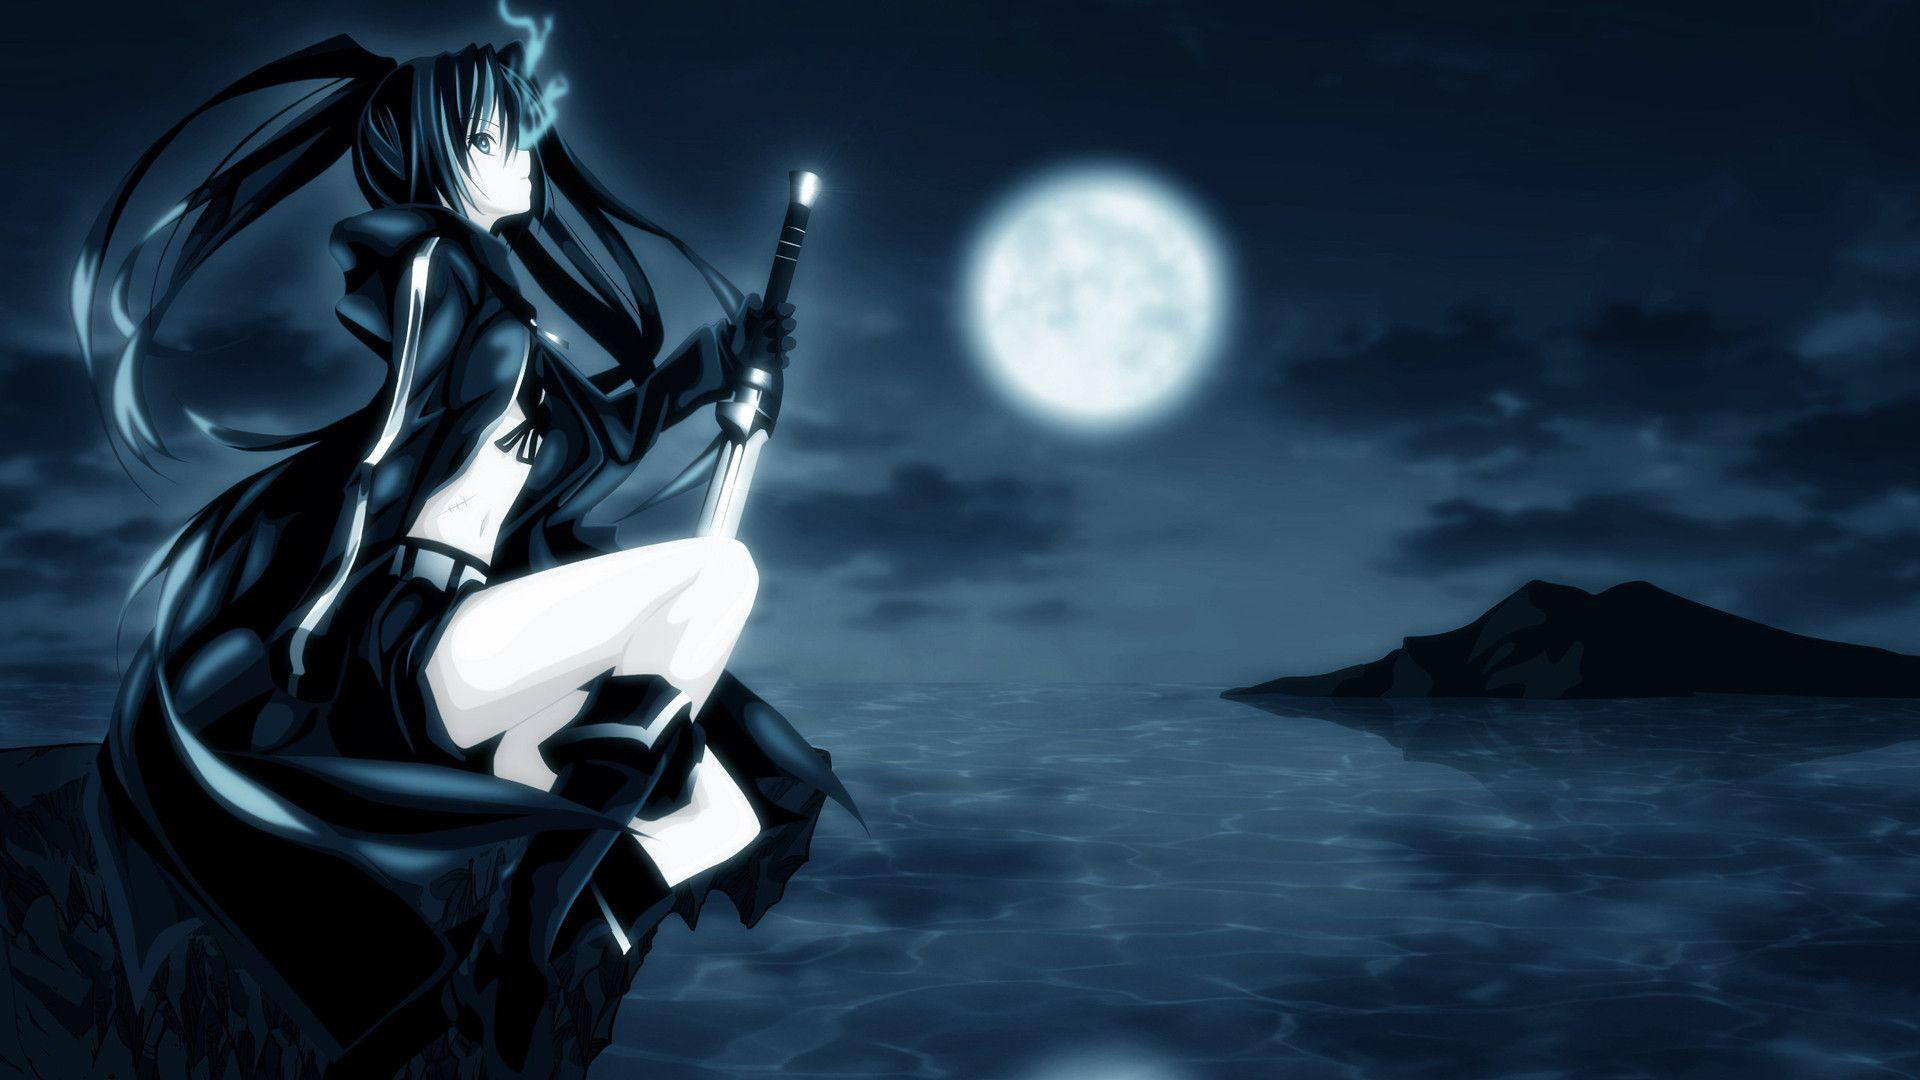 anime wallpaper dark science - photo #16